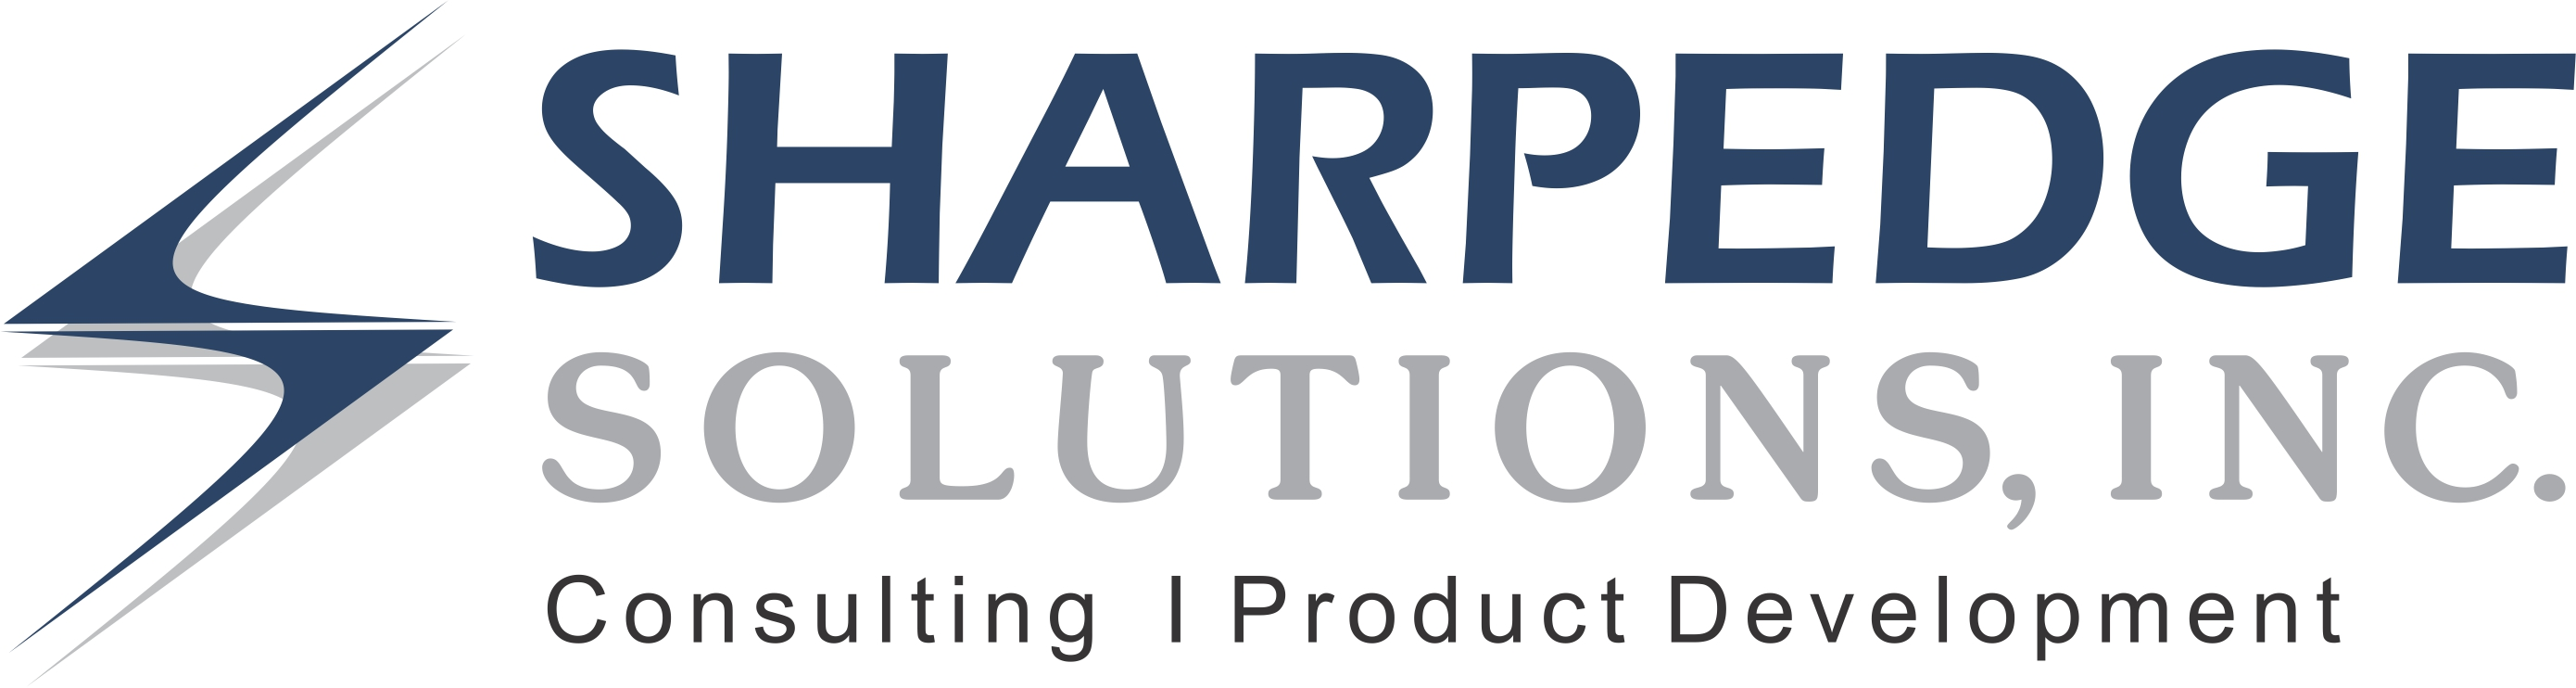 Sharpedge Solutions Inc